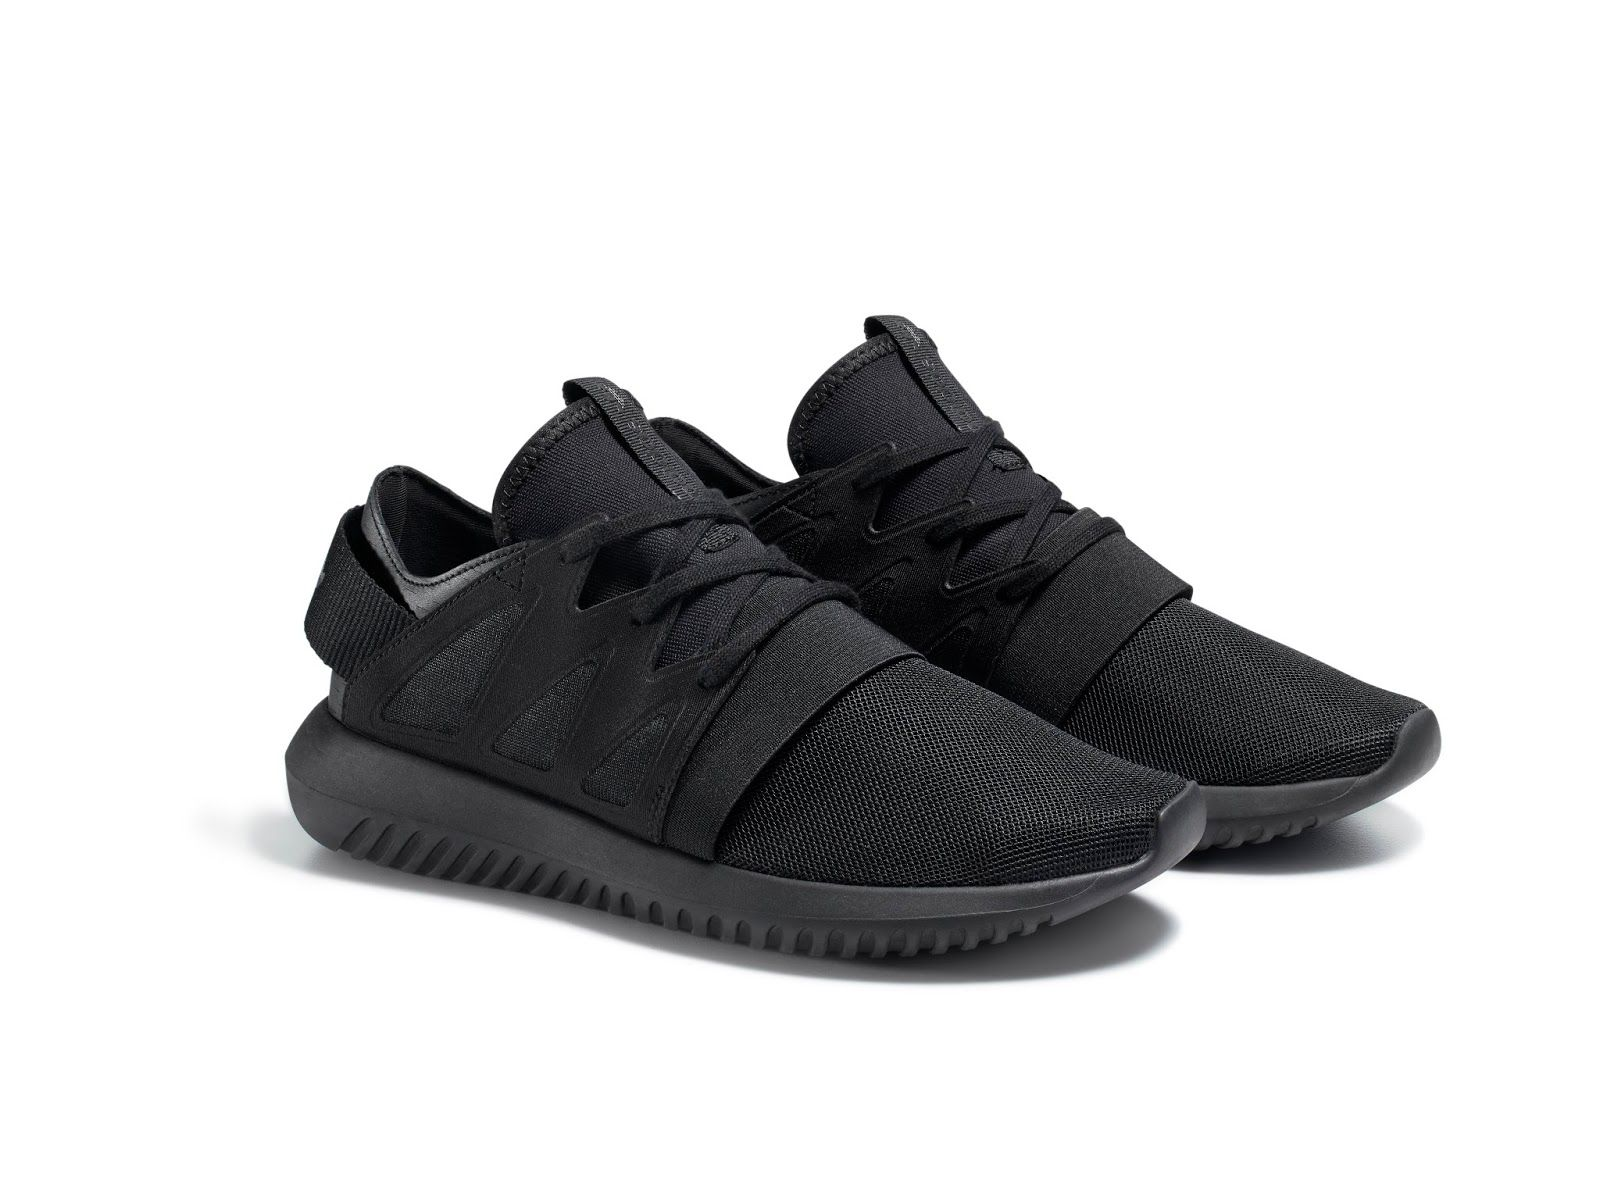 finest selection 032ed e7d3c adidas Originals has released new Tubular footwear, in the ...